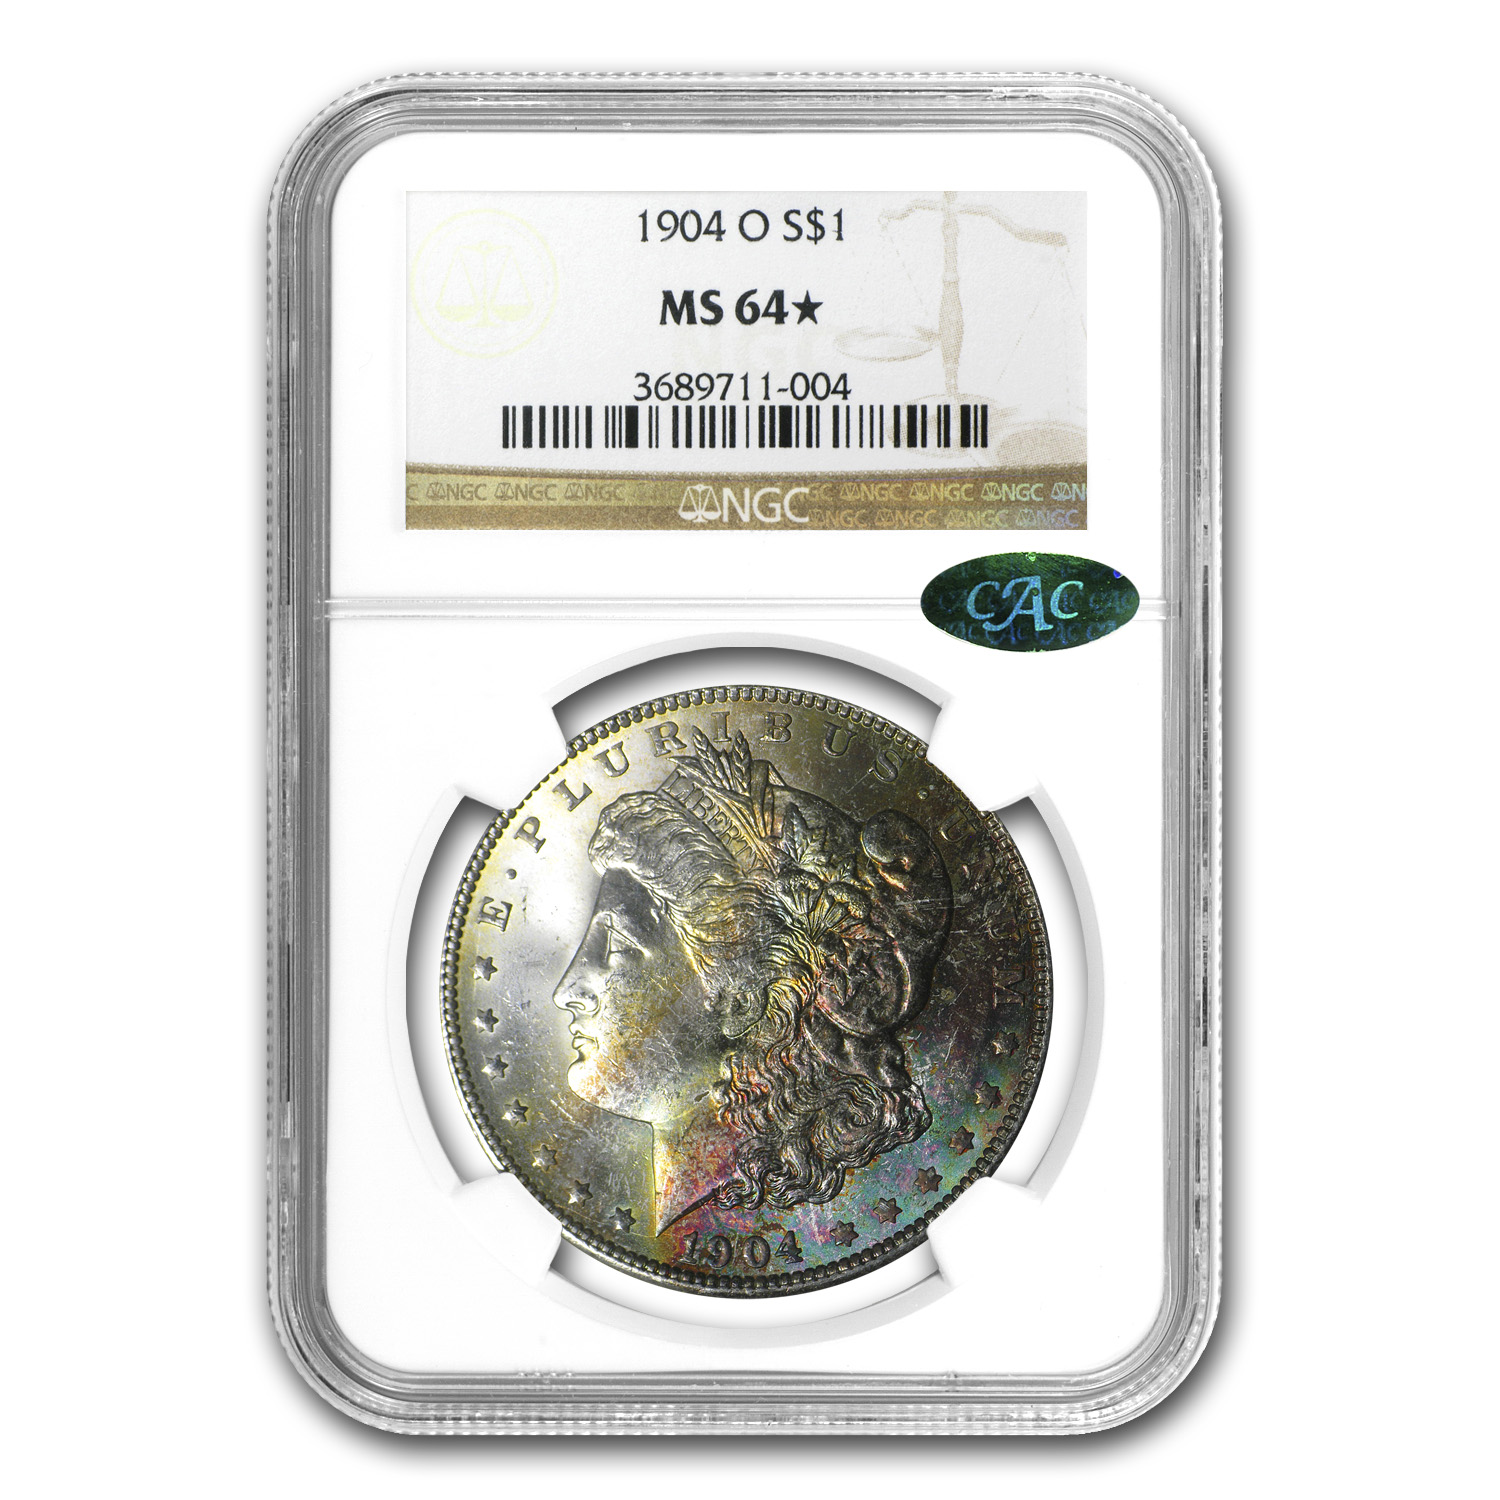 1904-O Morgan Dollar MS-64* Star NGC (Beautiful Obv Colors, CAC)